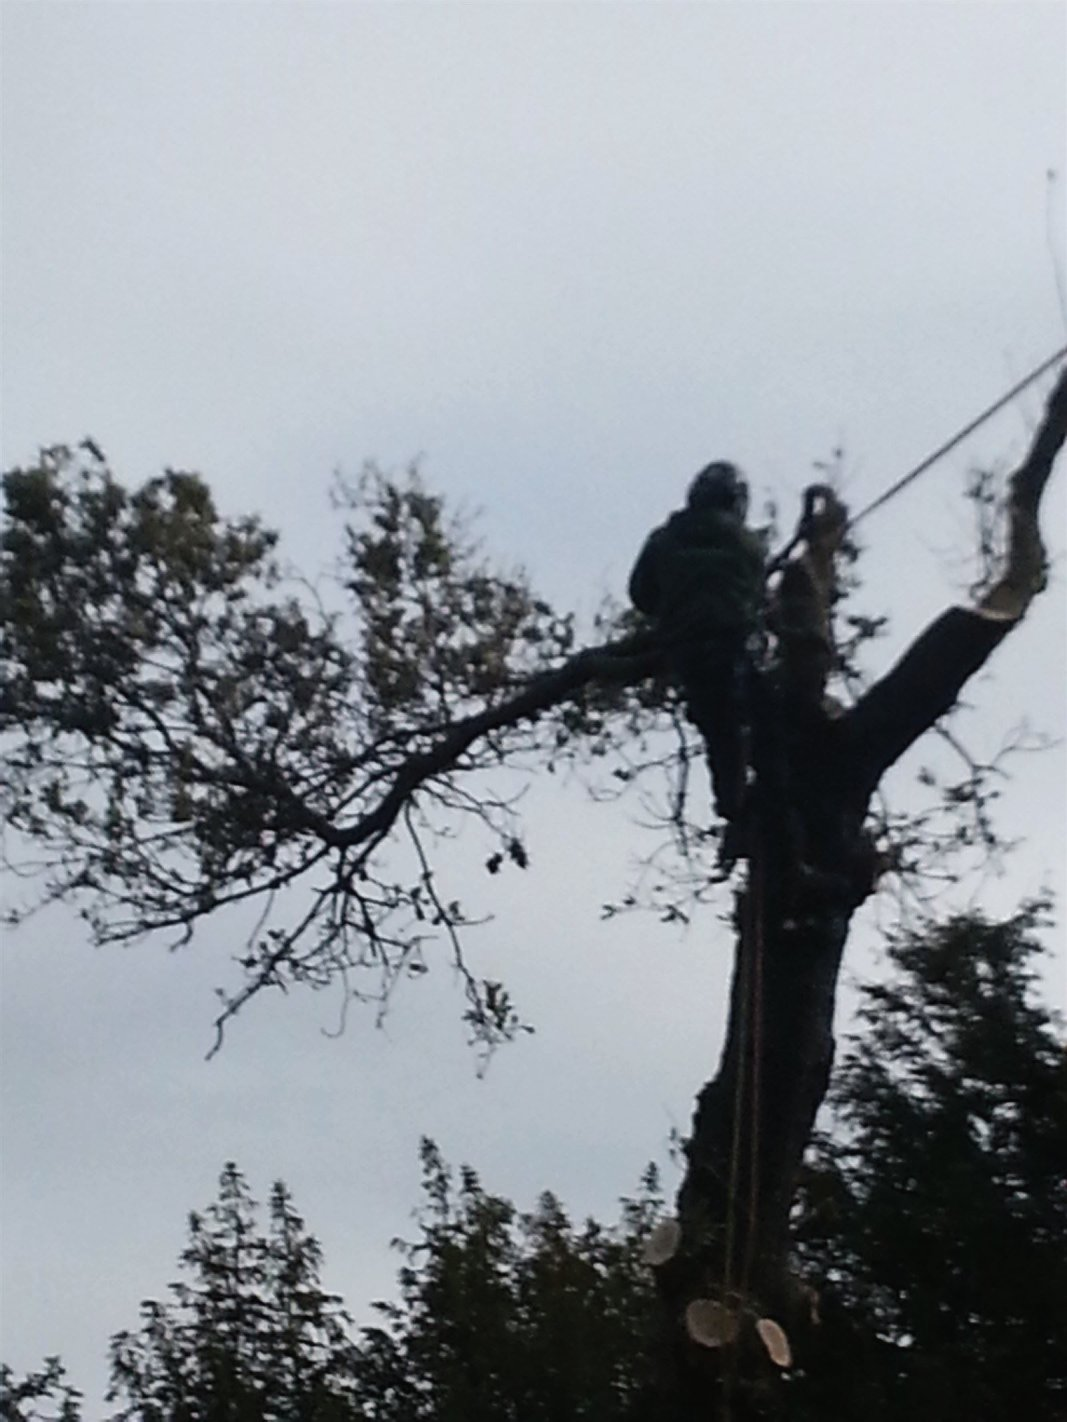 Qualified professional tree surgeon services in Edinburgh, Midlothian, East Lothian, Fife and the Scottish Borders regions